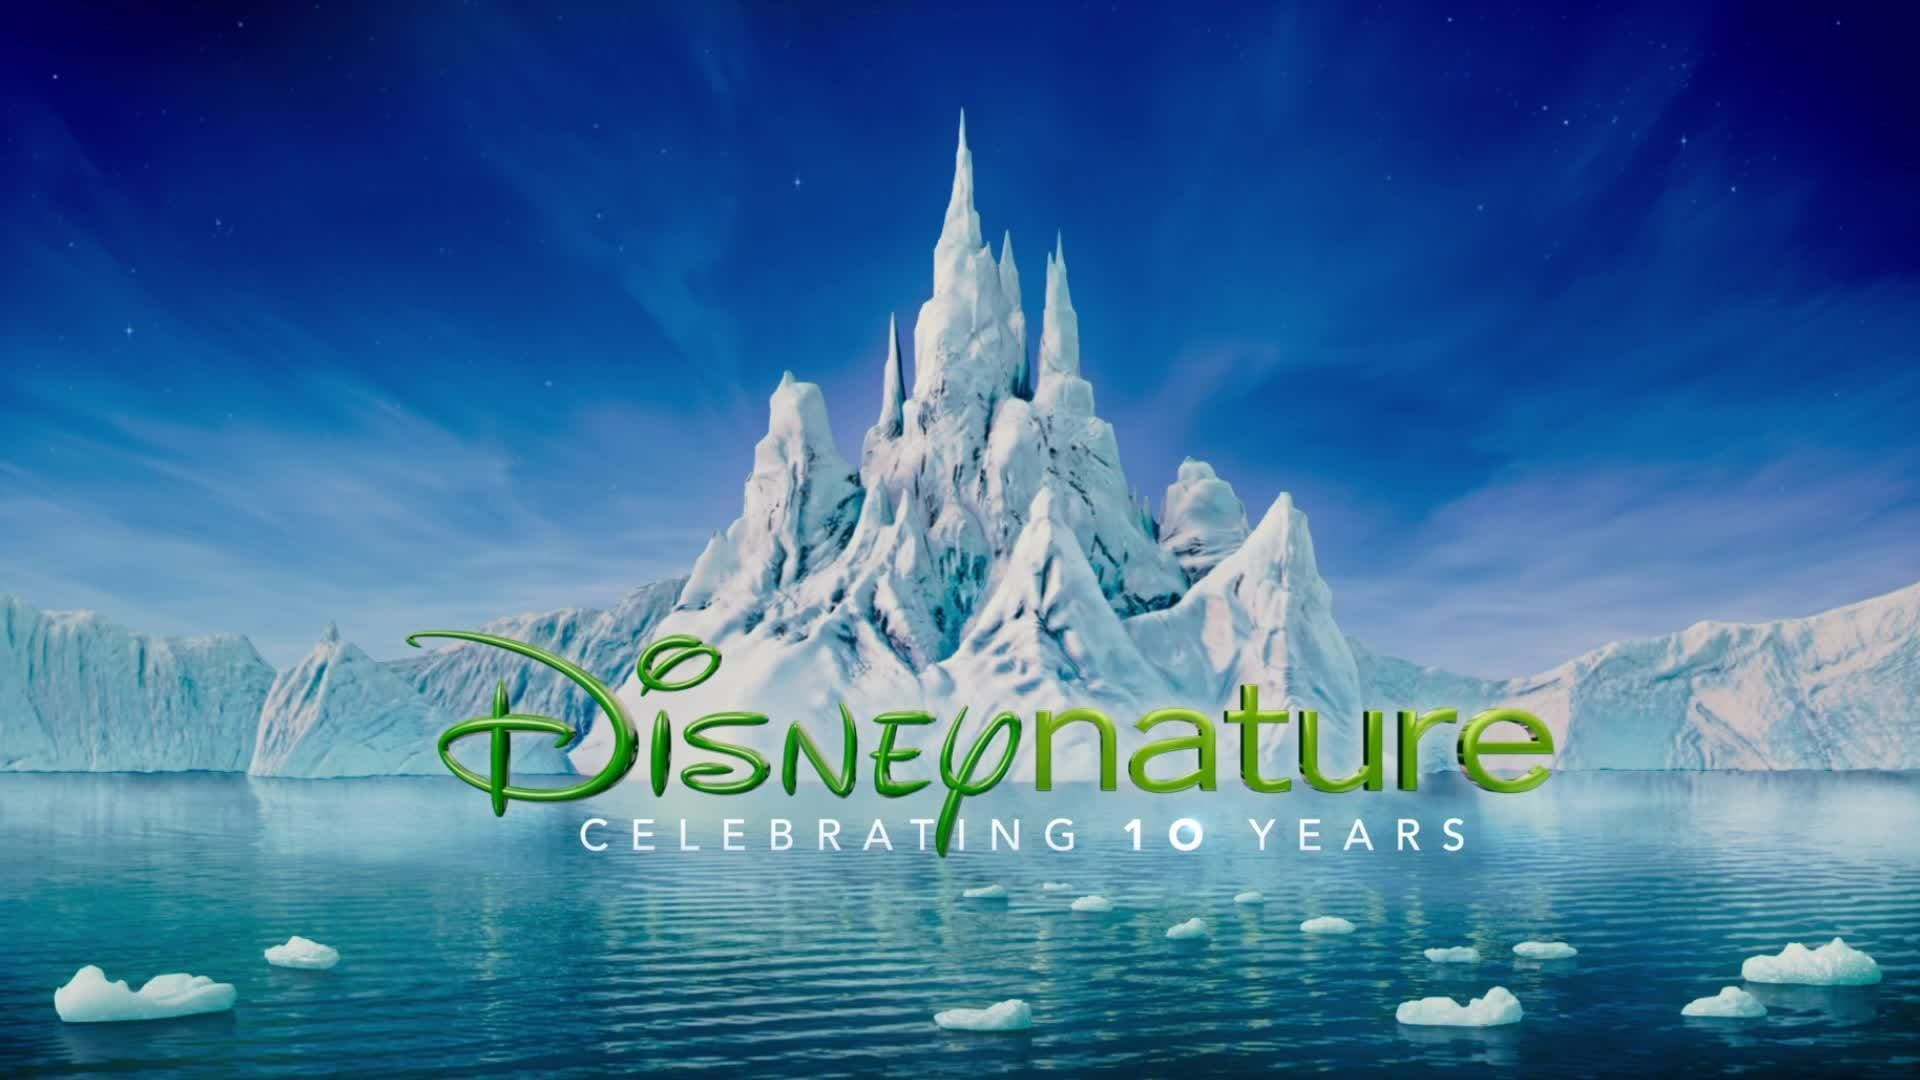 Celebrating 10 Years of Disneynature